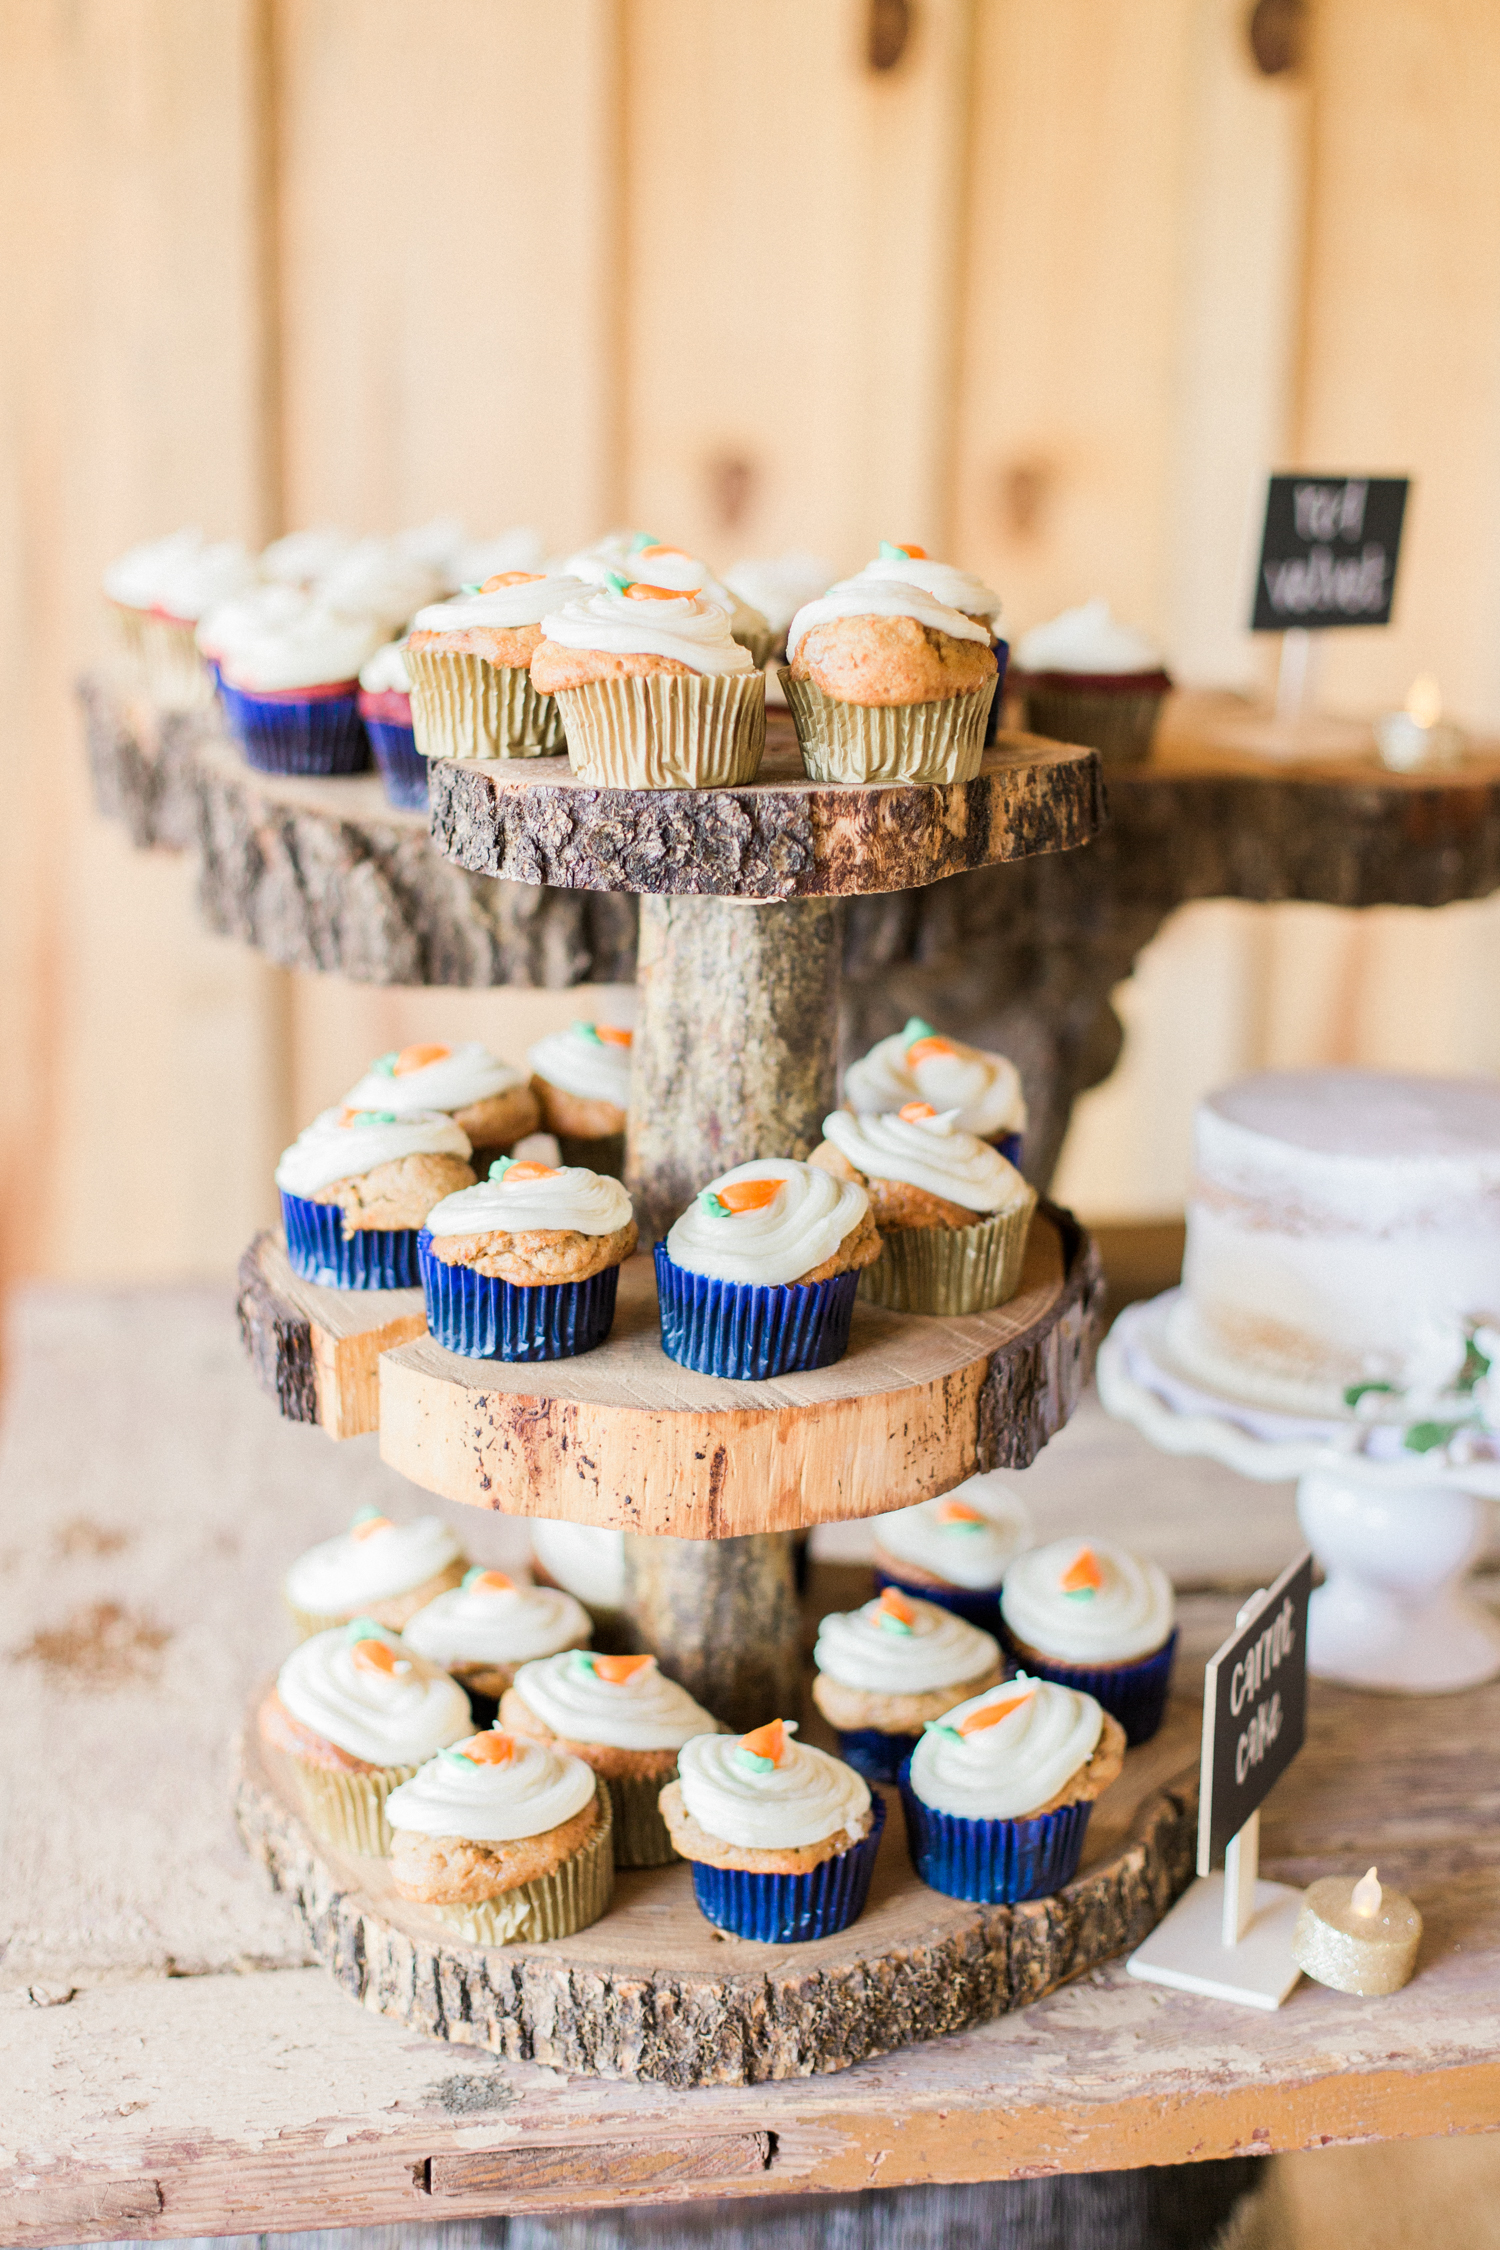 Cup cake tower on a rustic display. Summer, outdoor, barn wedding in north Georgia at Hays McDonald Farm in Jefferson, Georgia. Photo by Kesia Marie Photography - Fine Art Wedding Photographer.